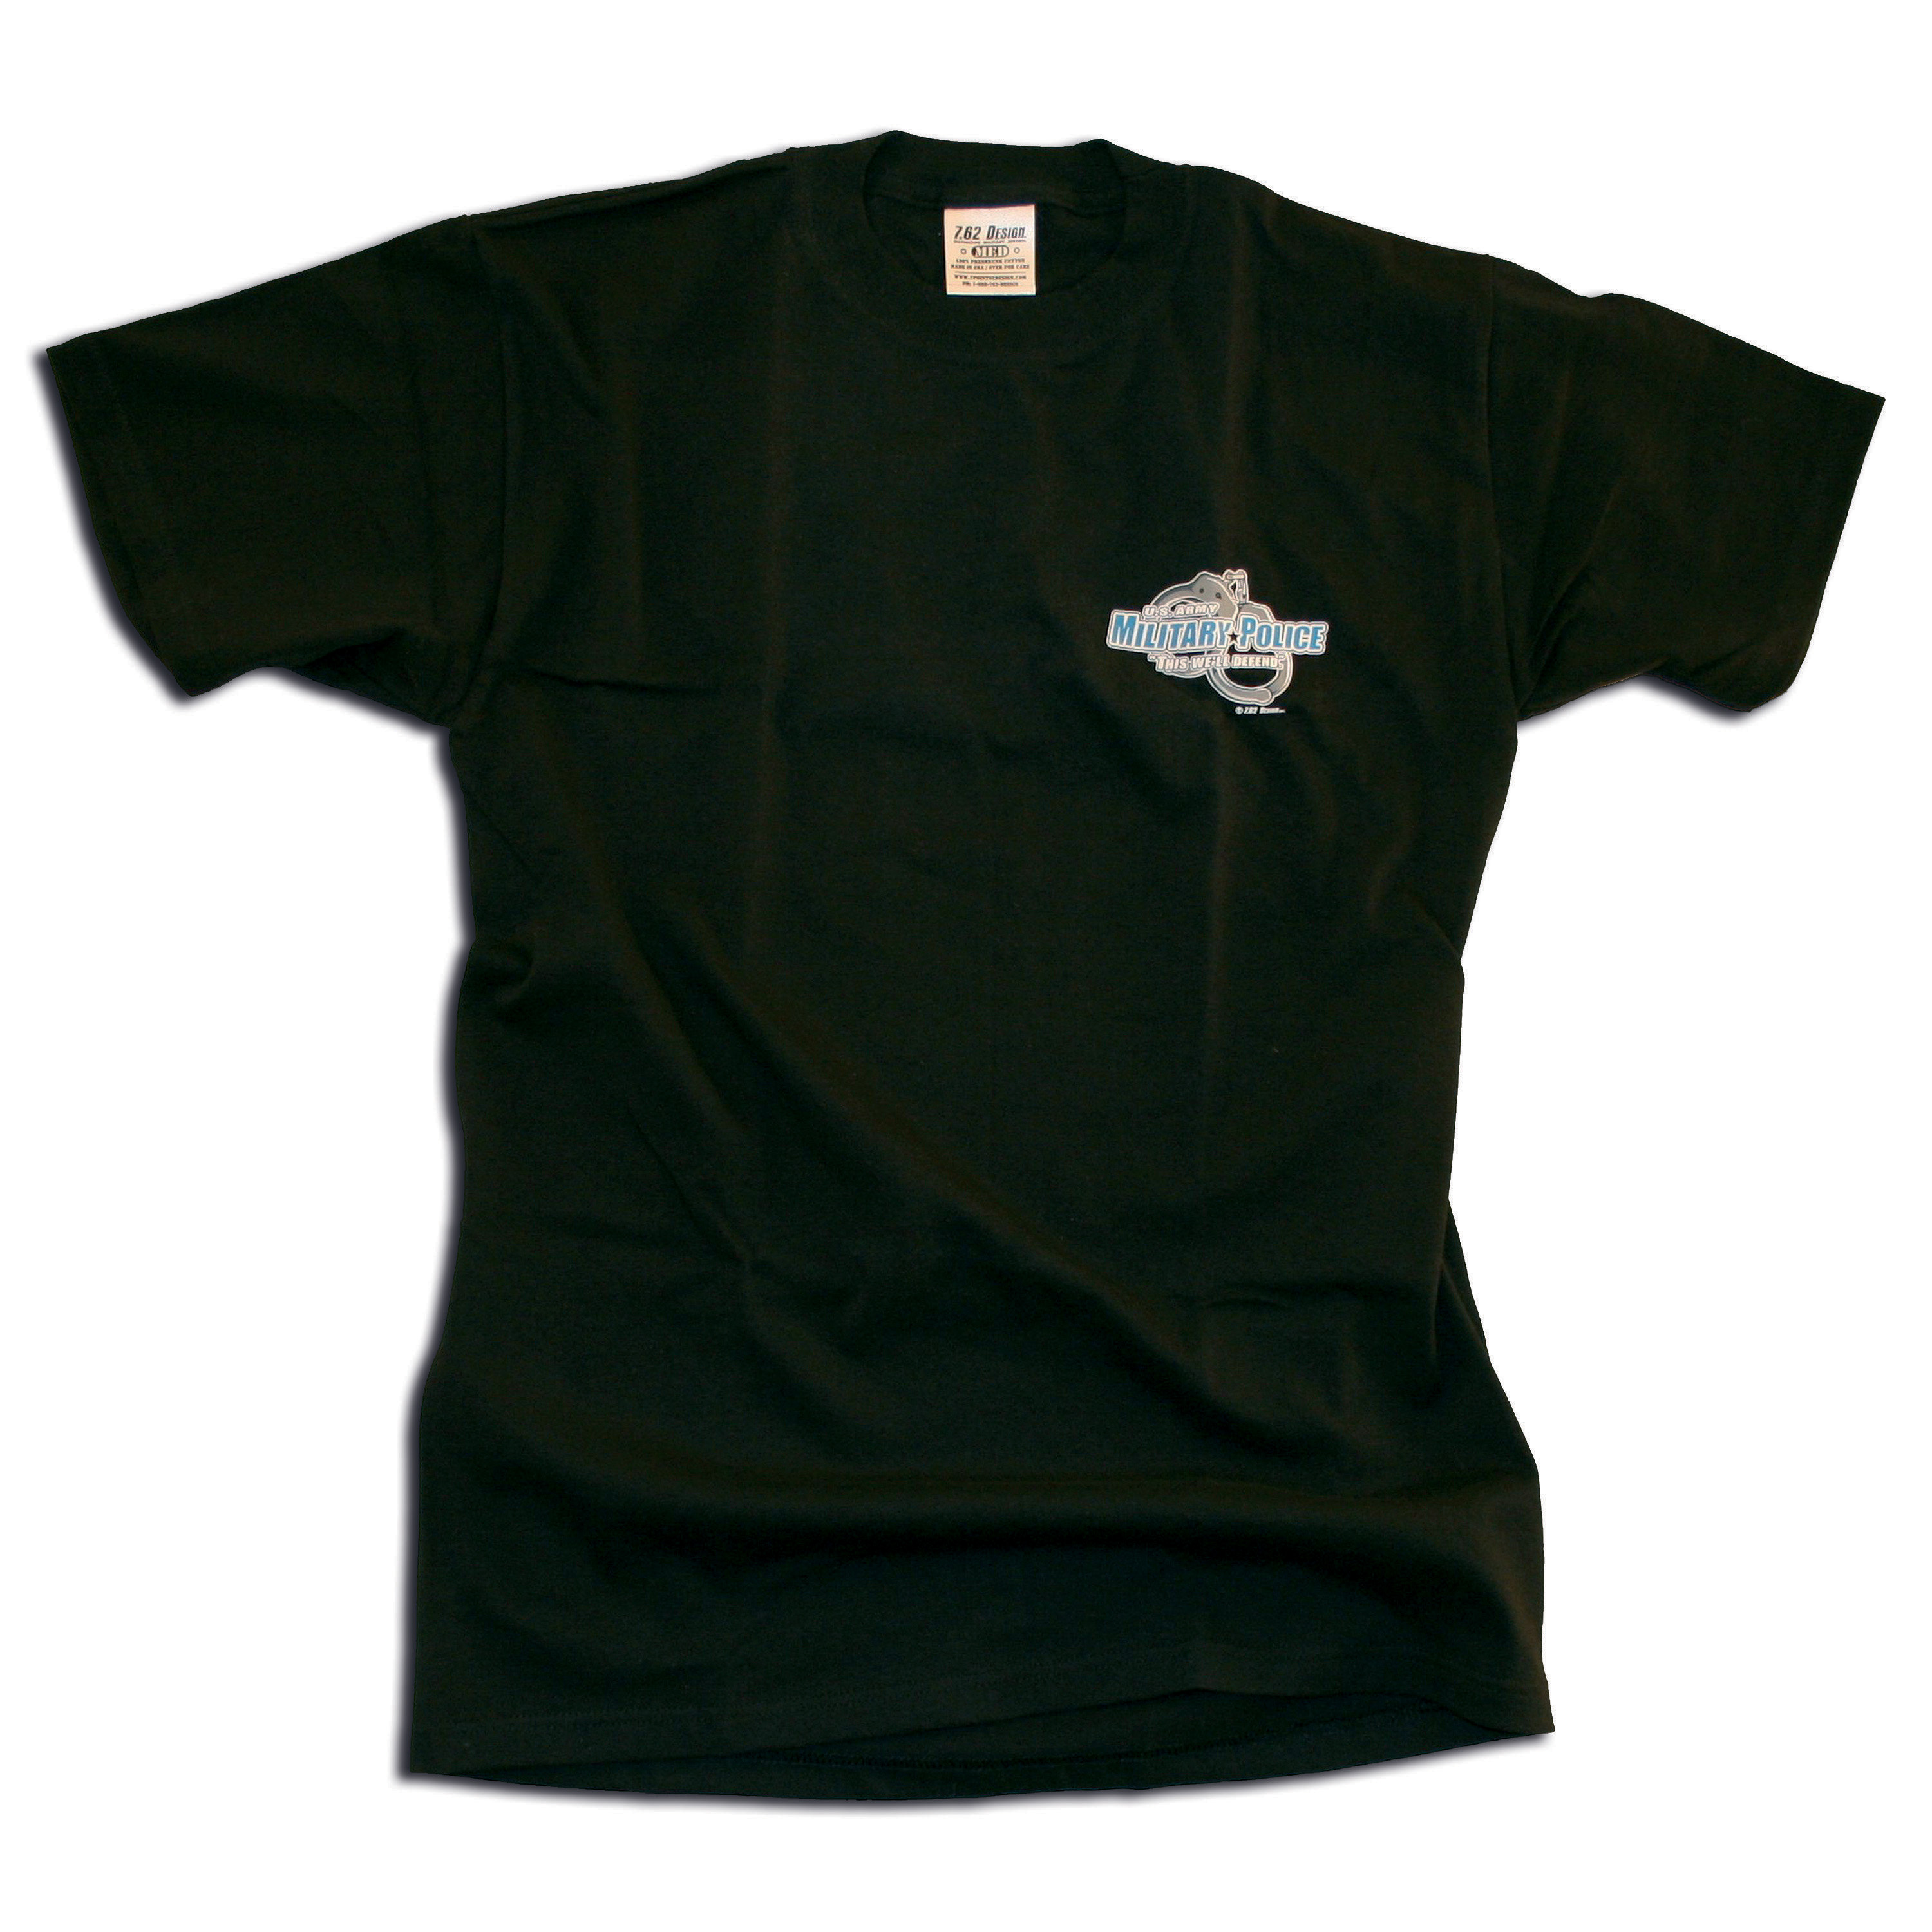 Titanen T-Shirt Military Police